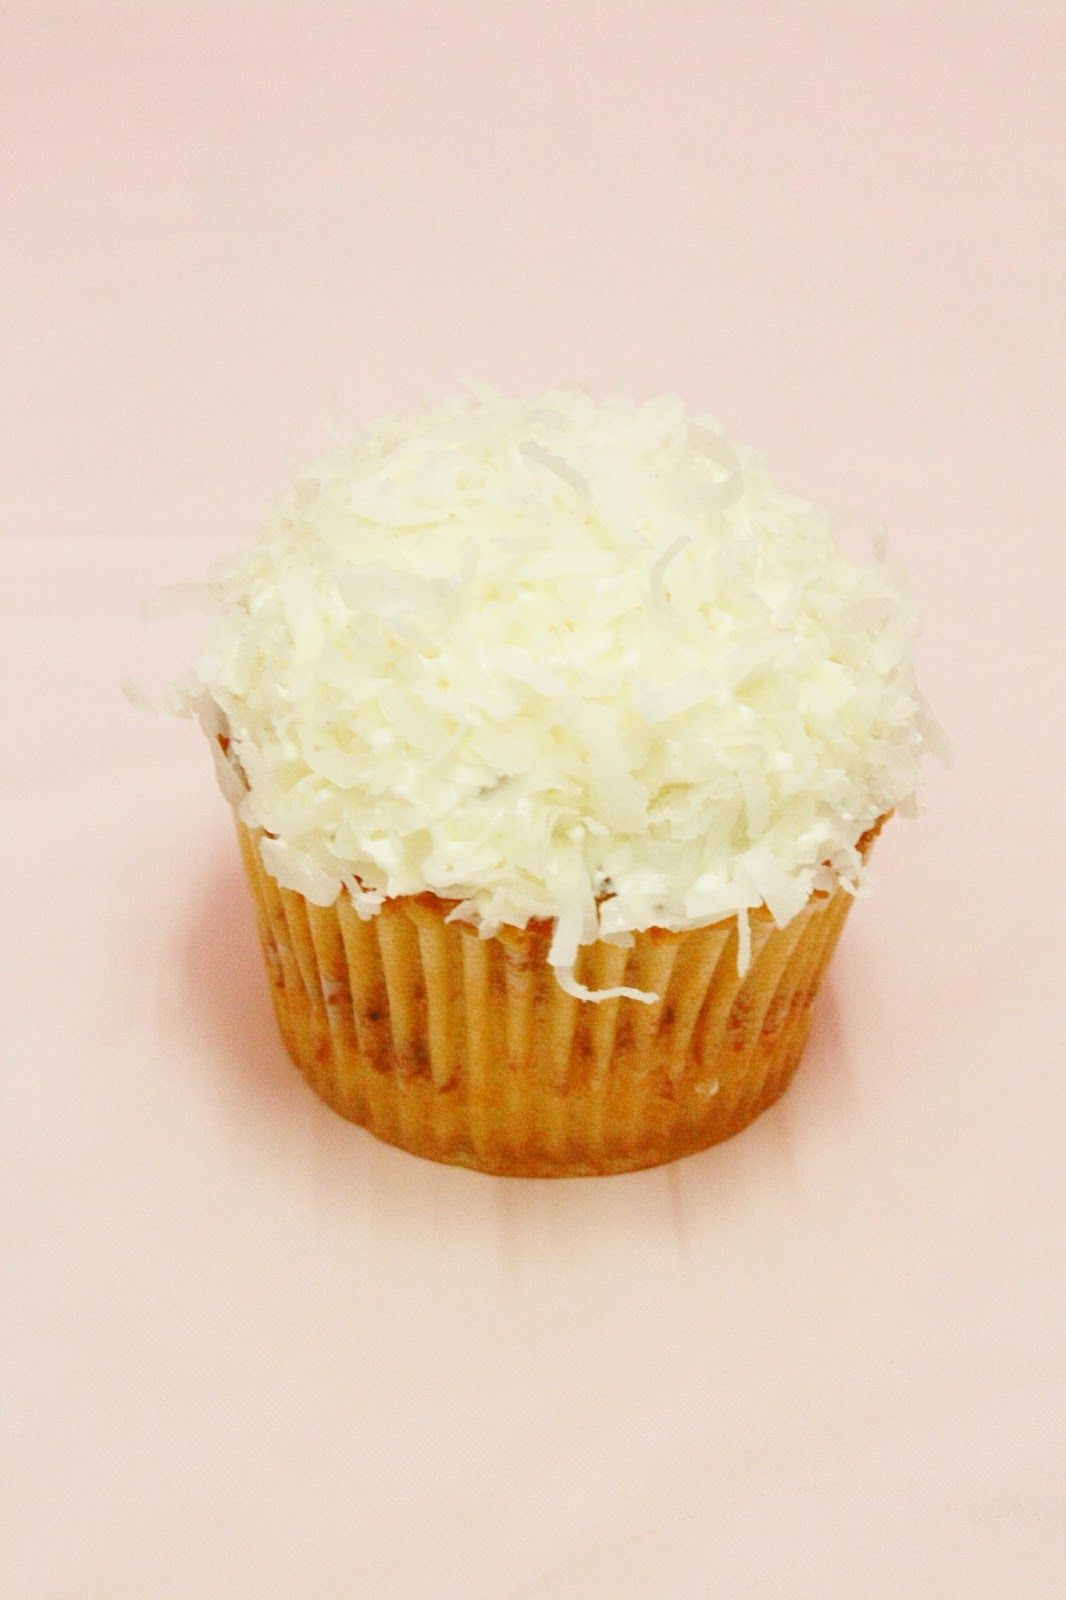 ... Coconut+Cake+with+Buttercream+Frosting+and+piled+high+with+Shredded